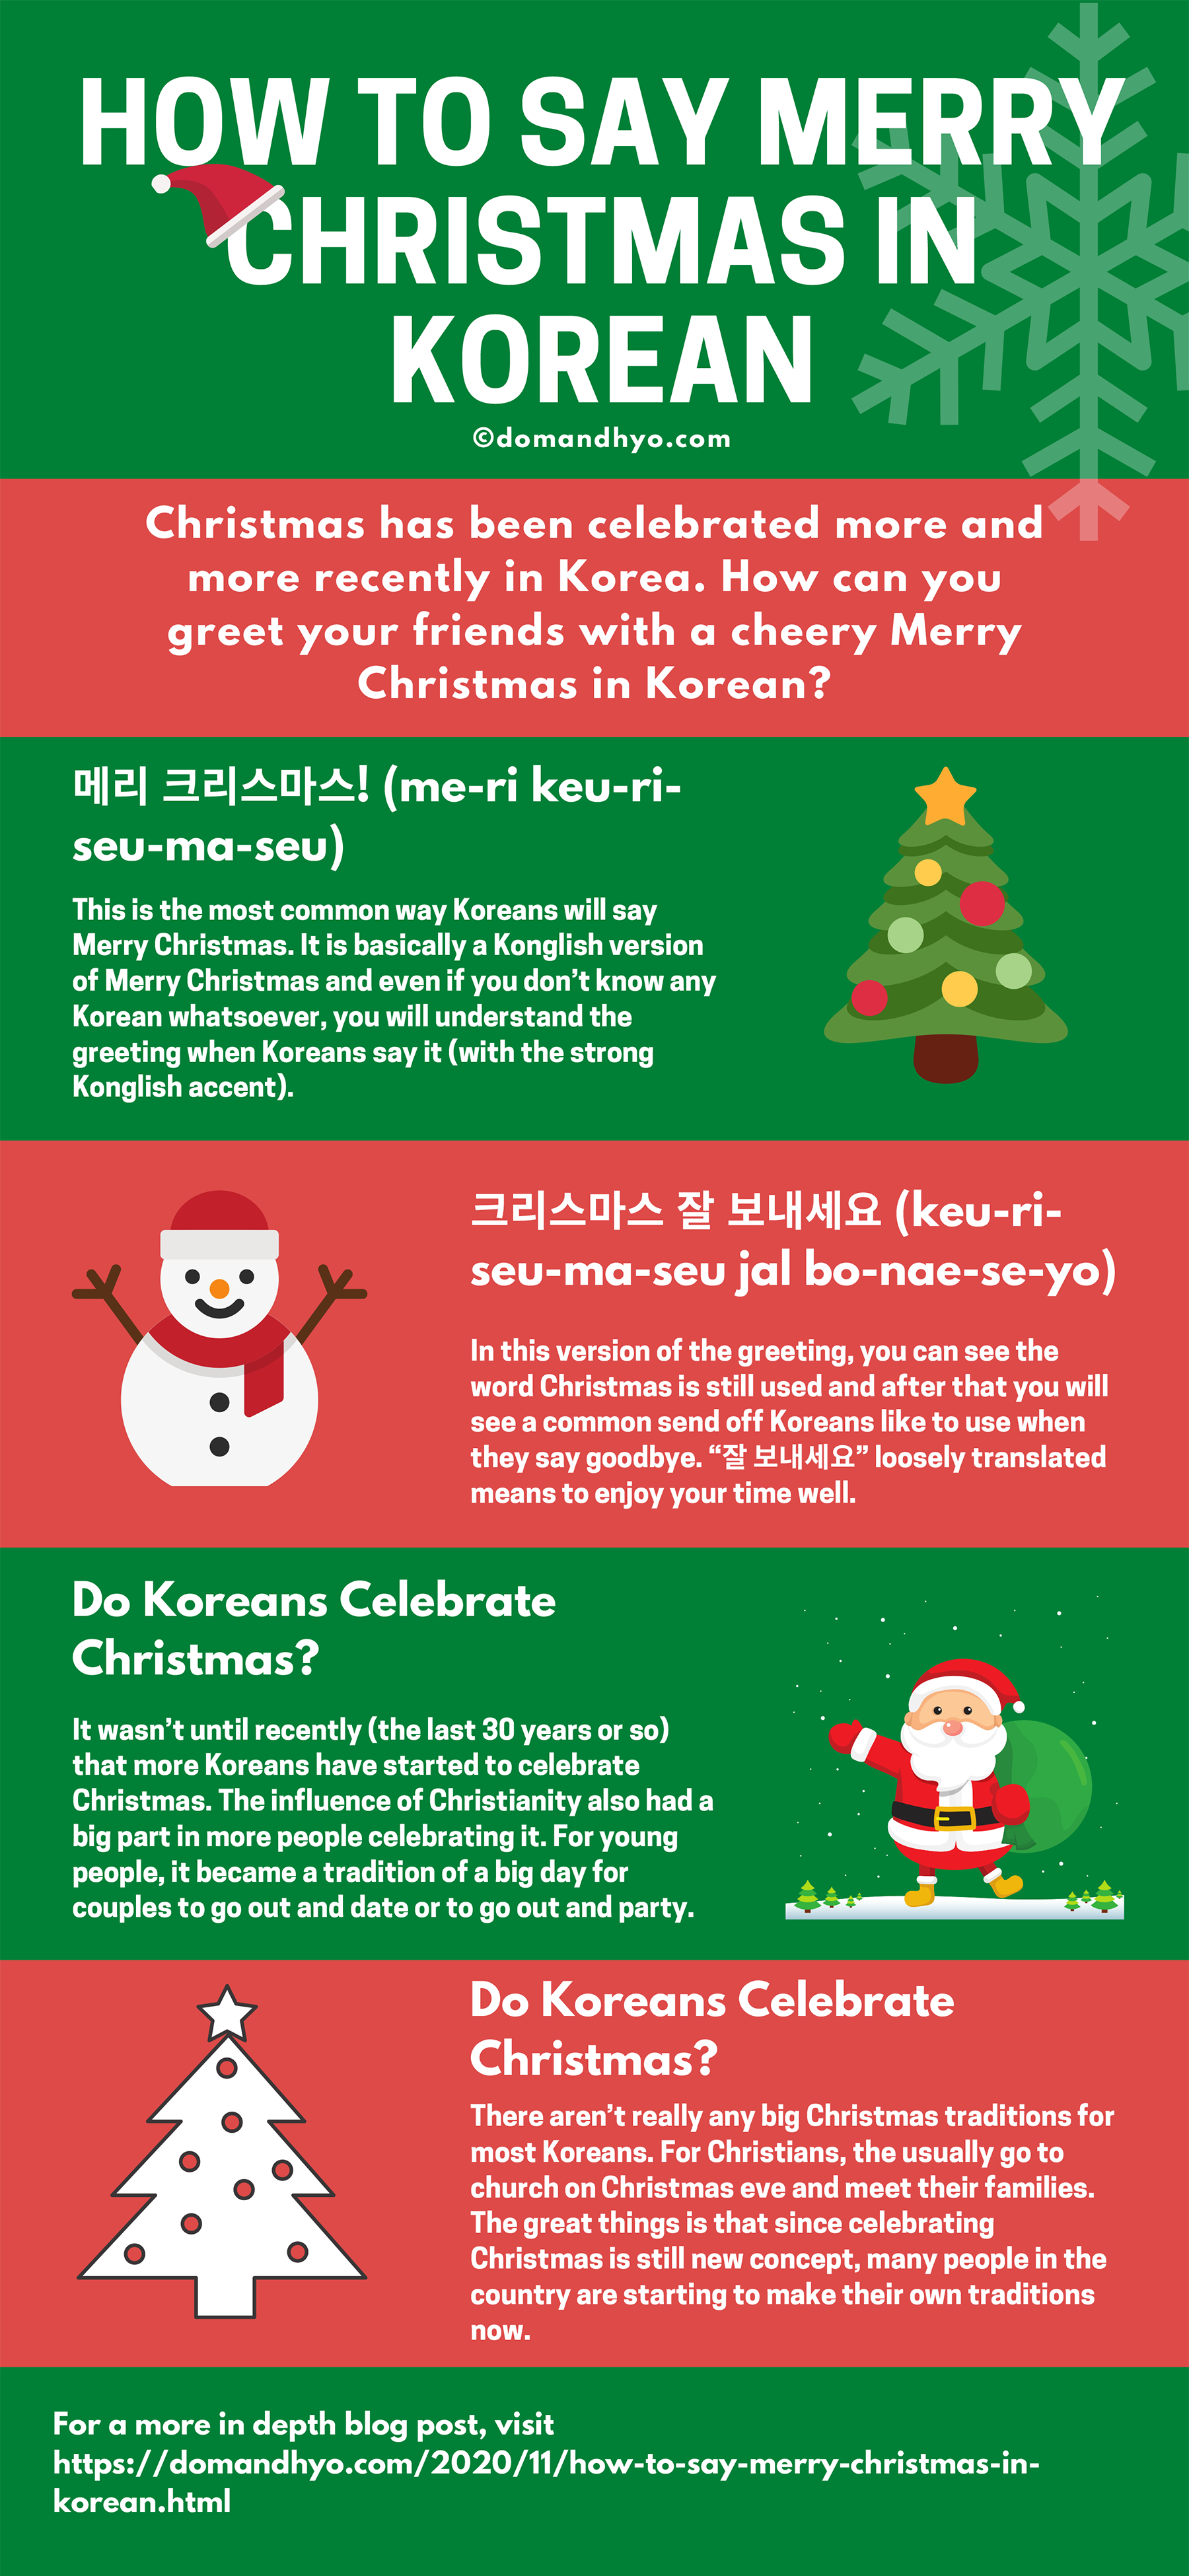 How to Say Merry Christmas in Korean Infographic